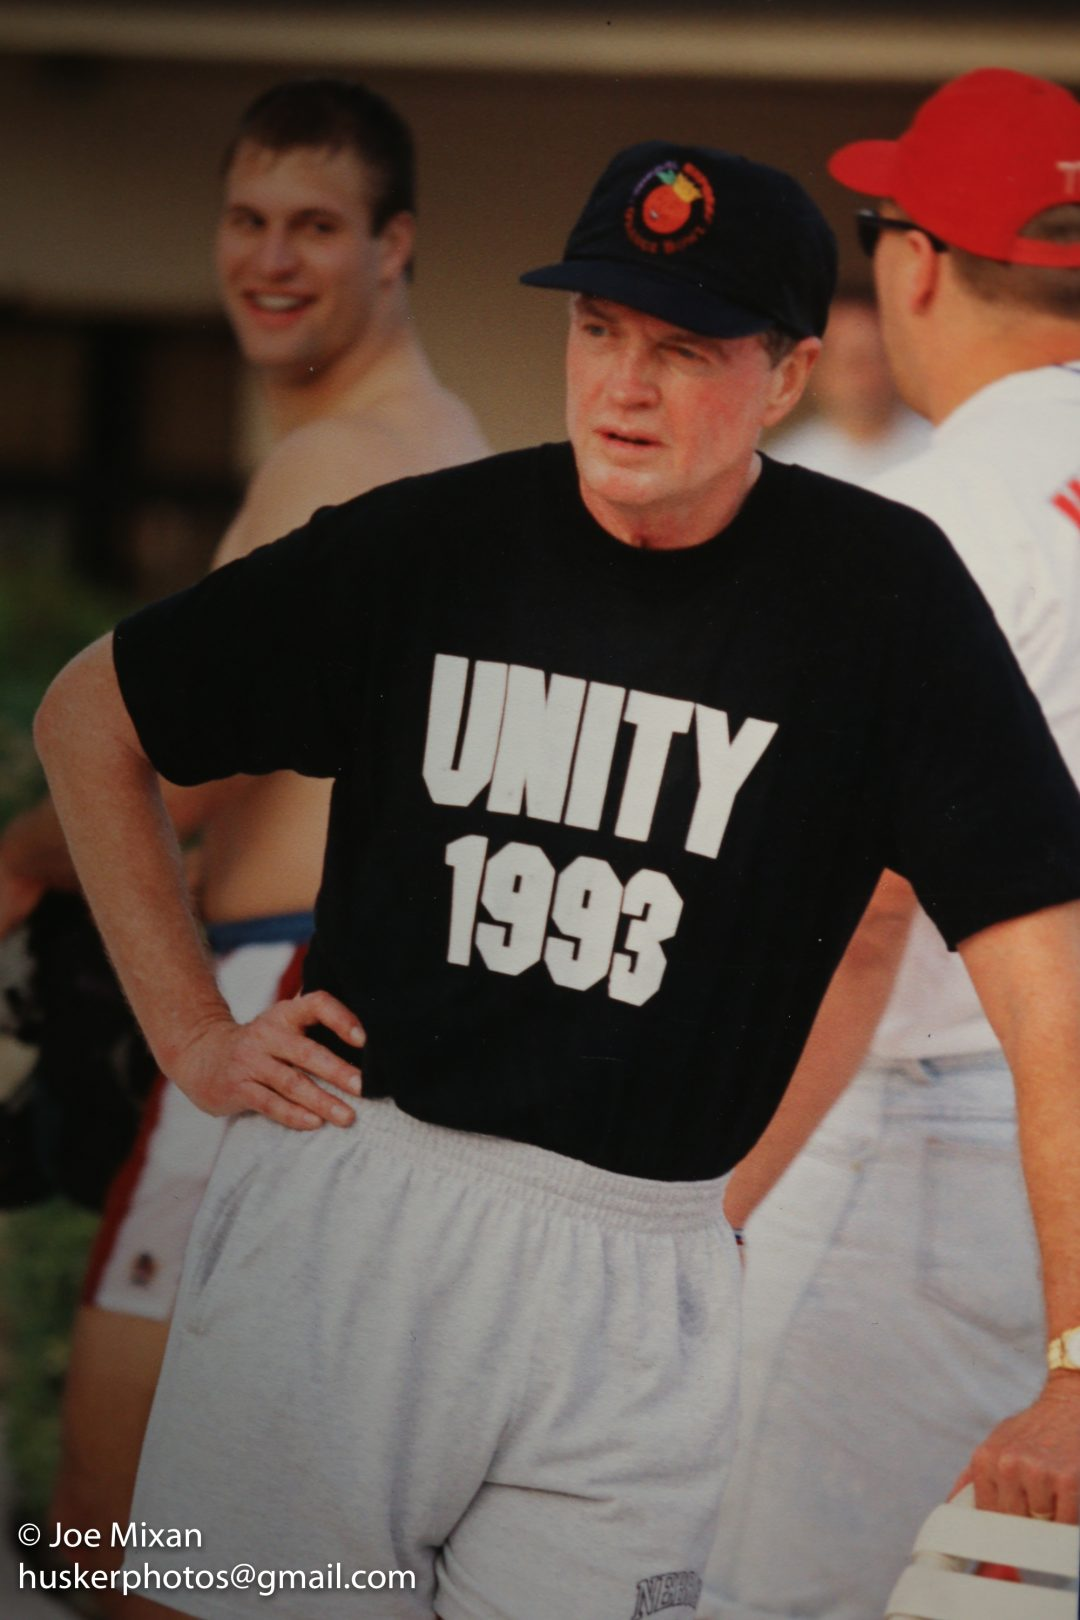 Tom Osborne and the Unity theme.